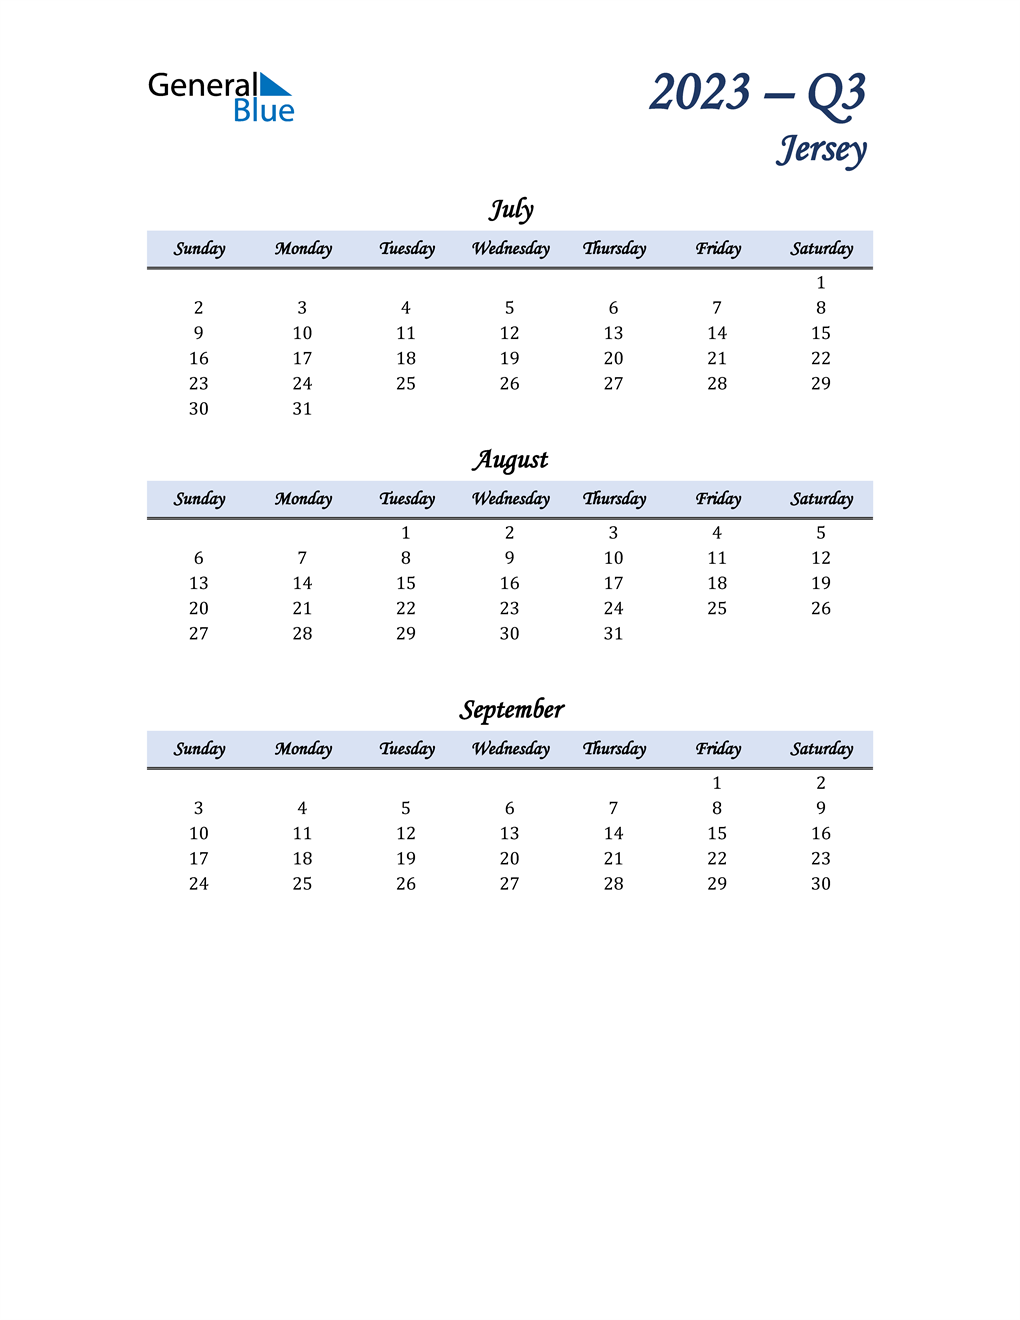 July, August, and September Calendar for Jersey